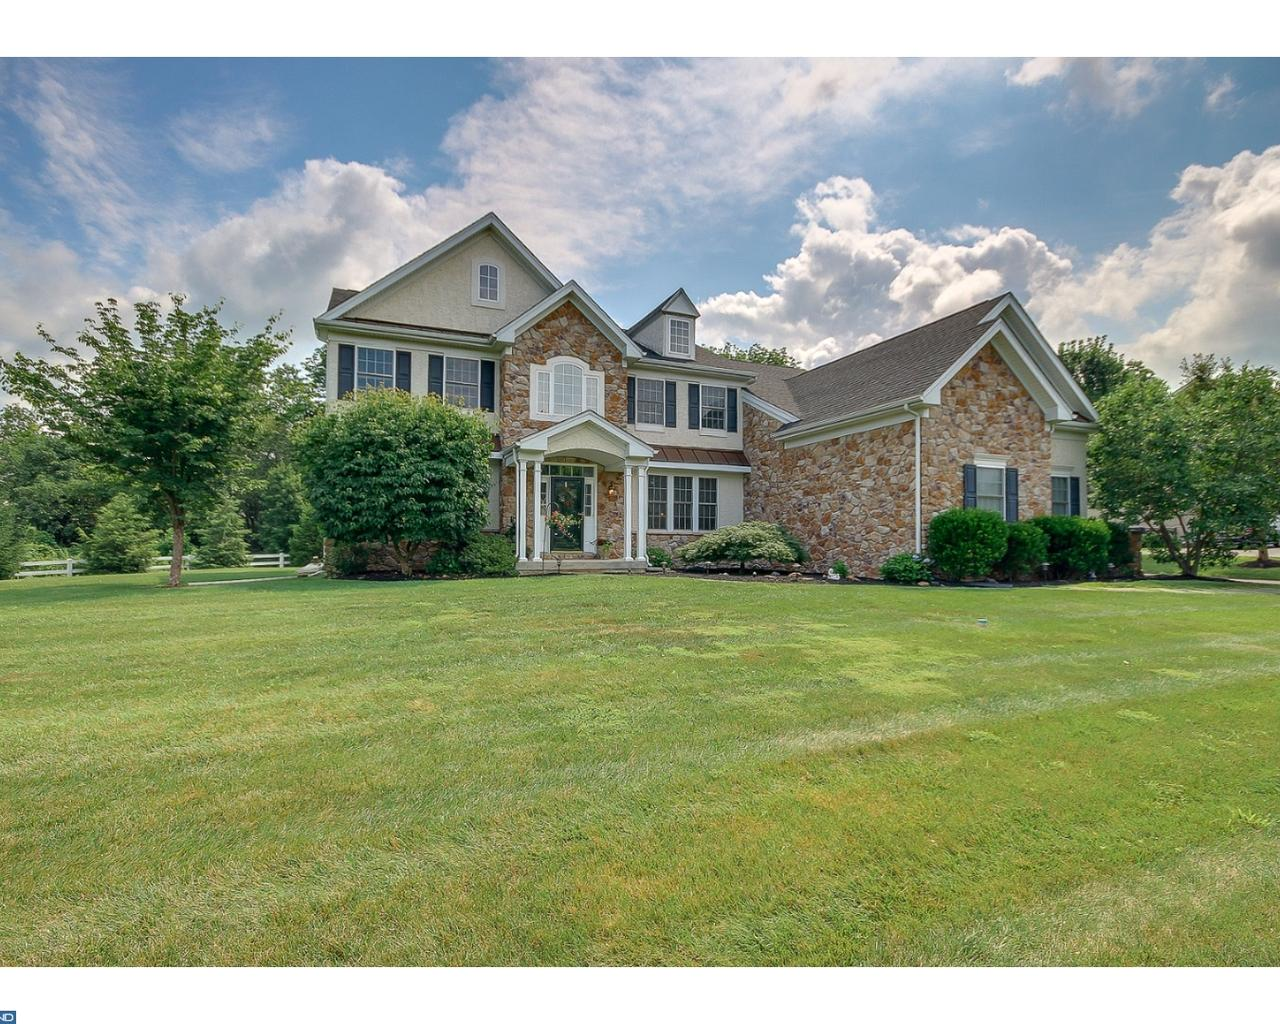 Property for sale at 4 VENUTI DR, Garnet Valley,  PA 19014